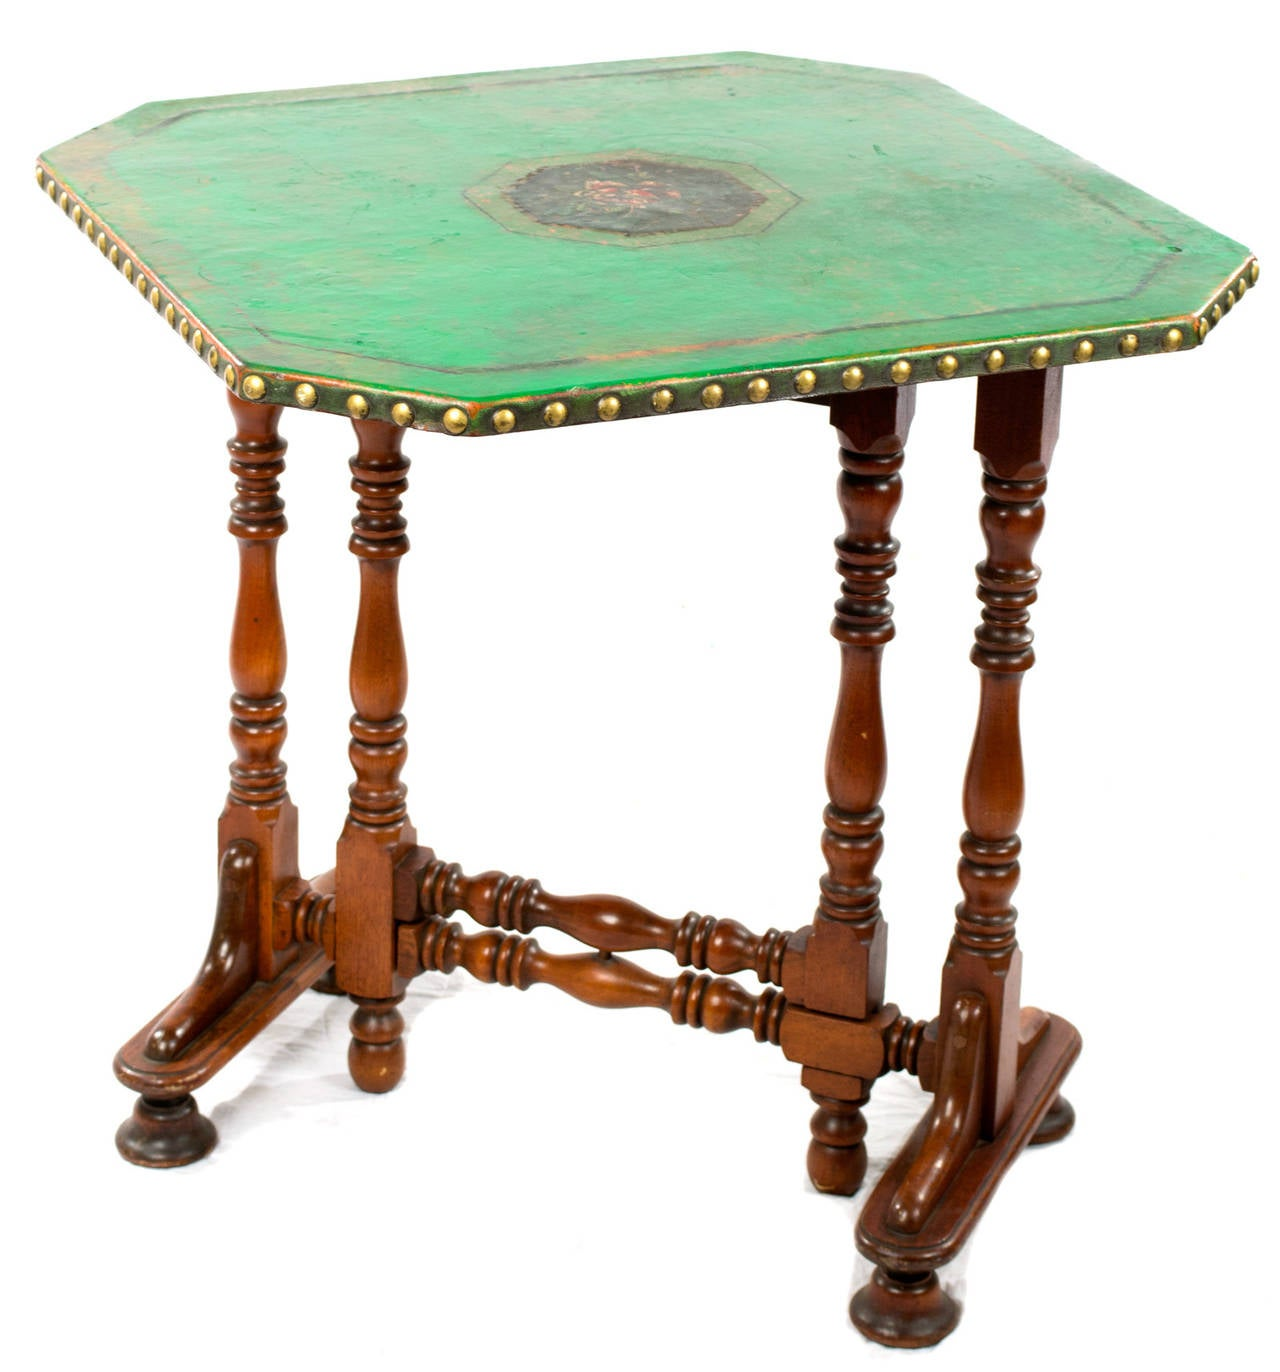 English Folding Green Leather Game Table 2